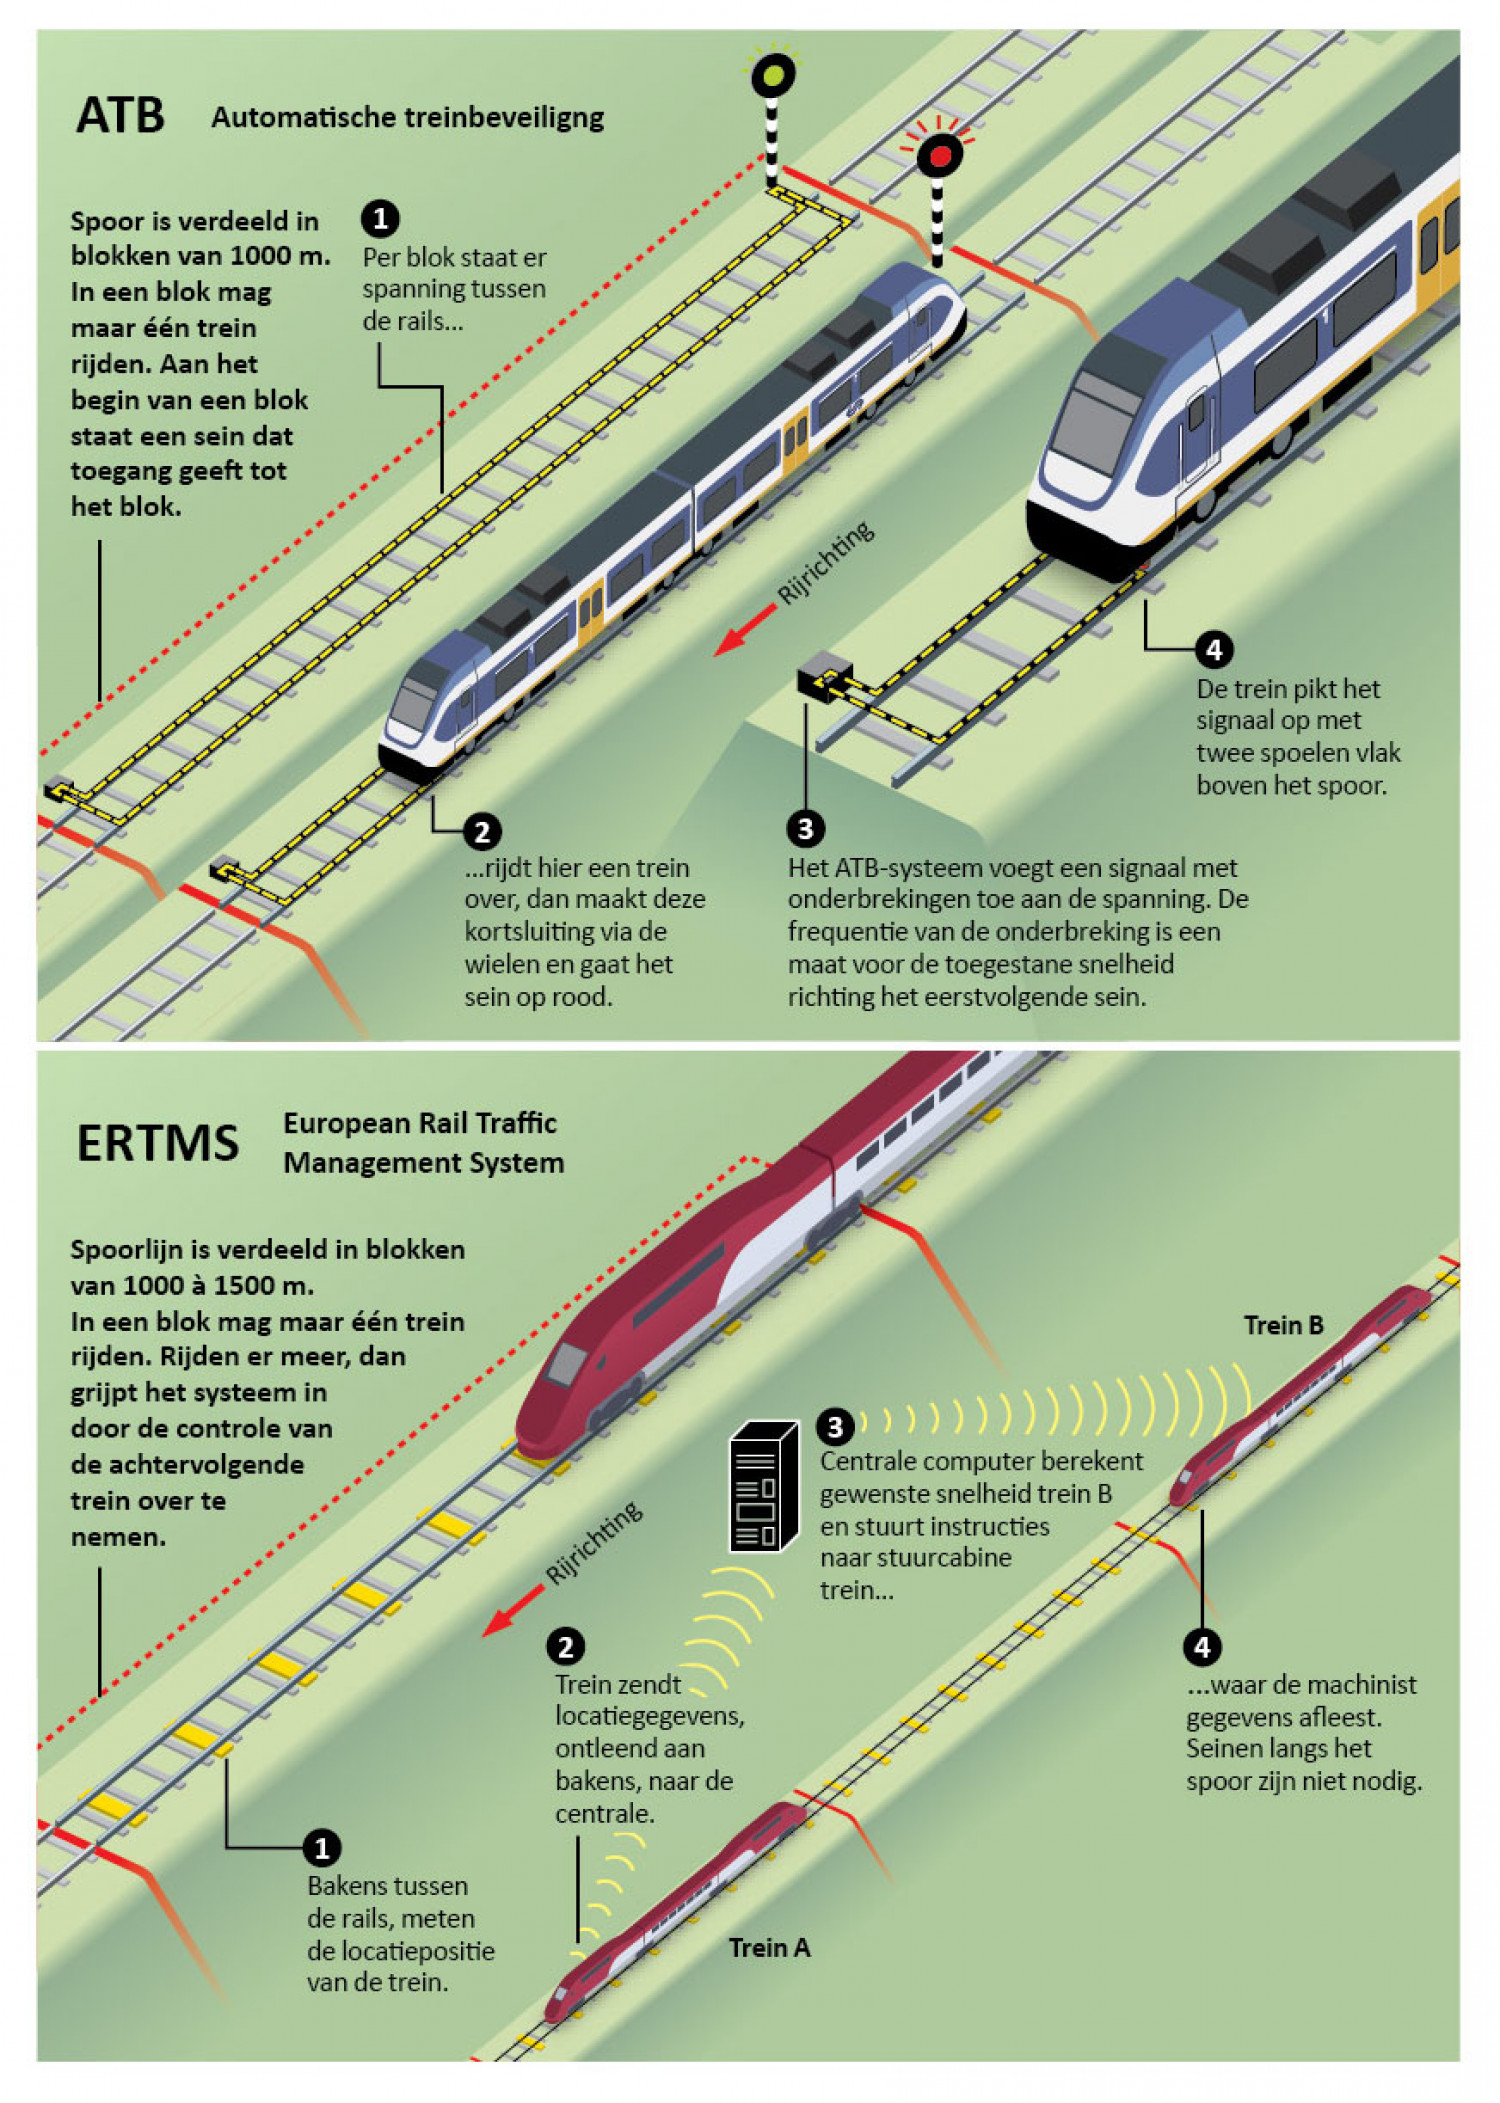 Safetysystems for railways Infographic